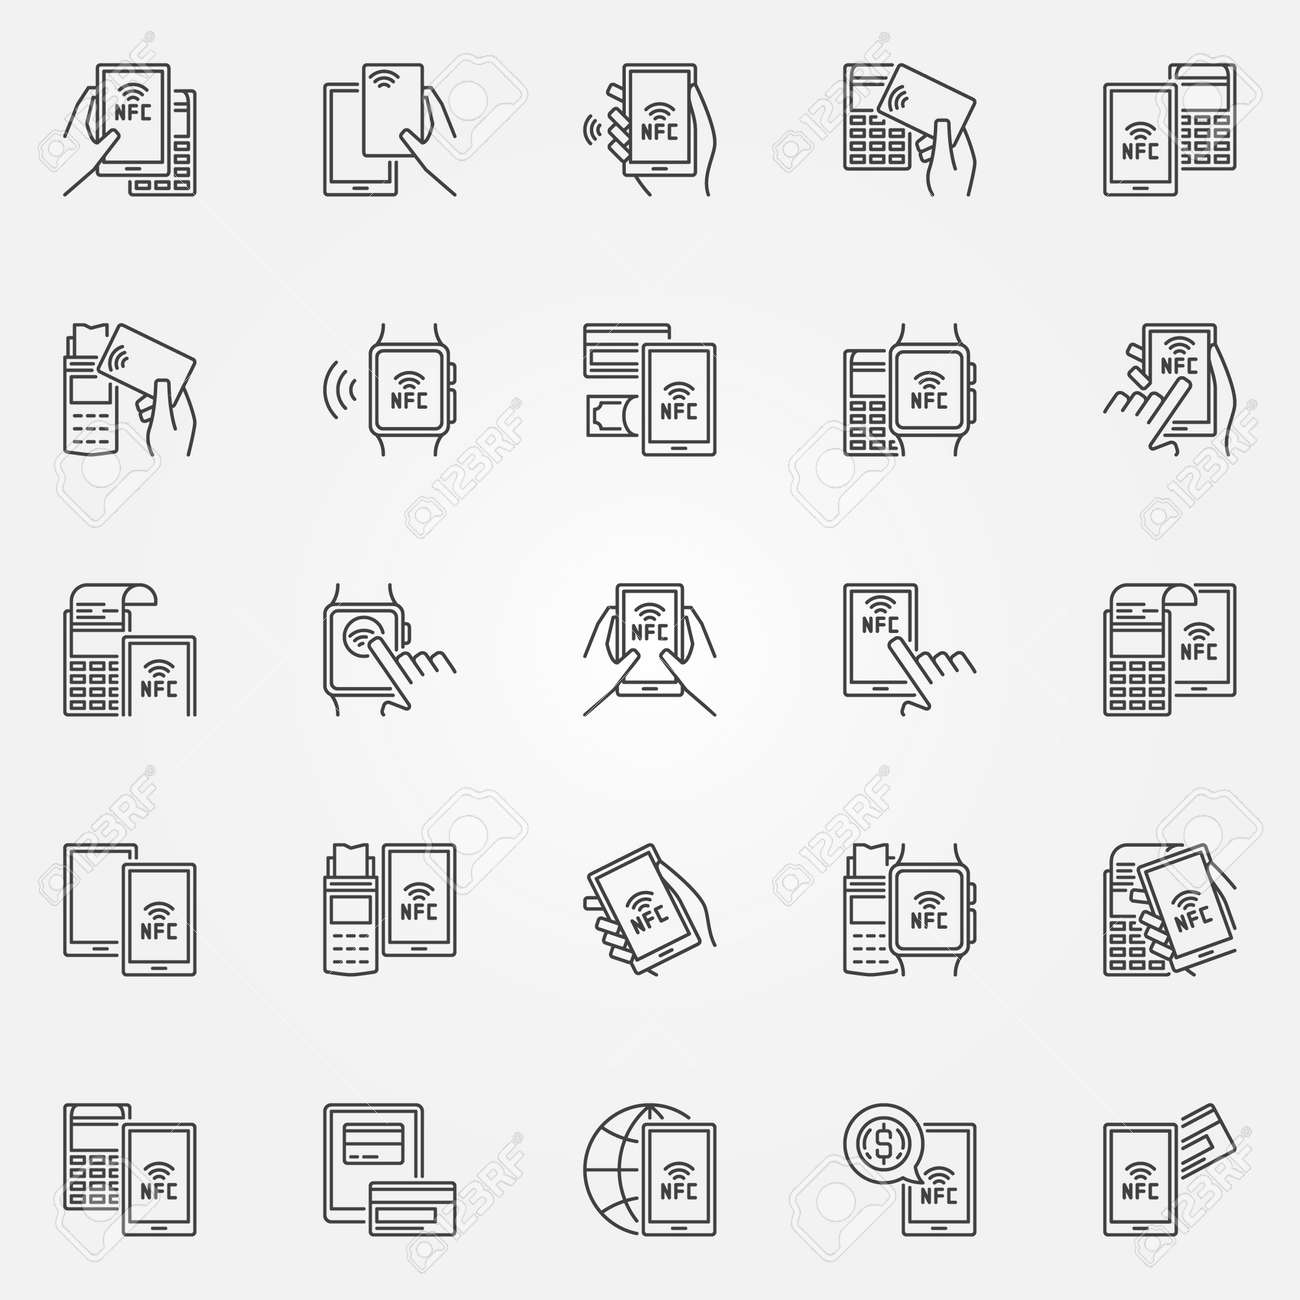 NFC payment icons. Vector collection of smartphone and card NFC paying with POS terminal signs in thin line style - 67579646